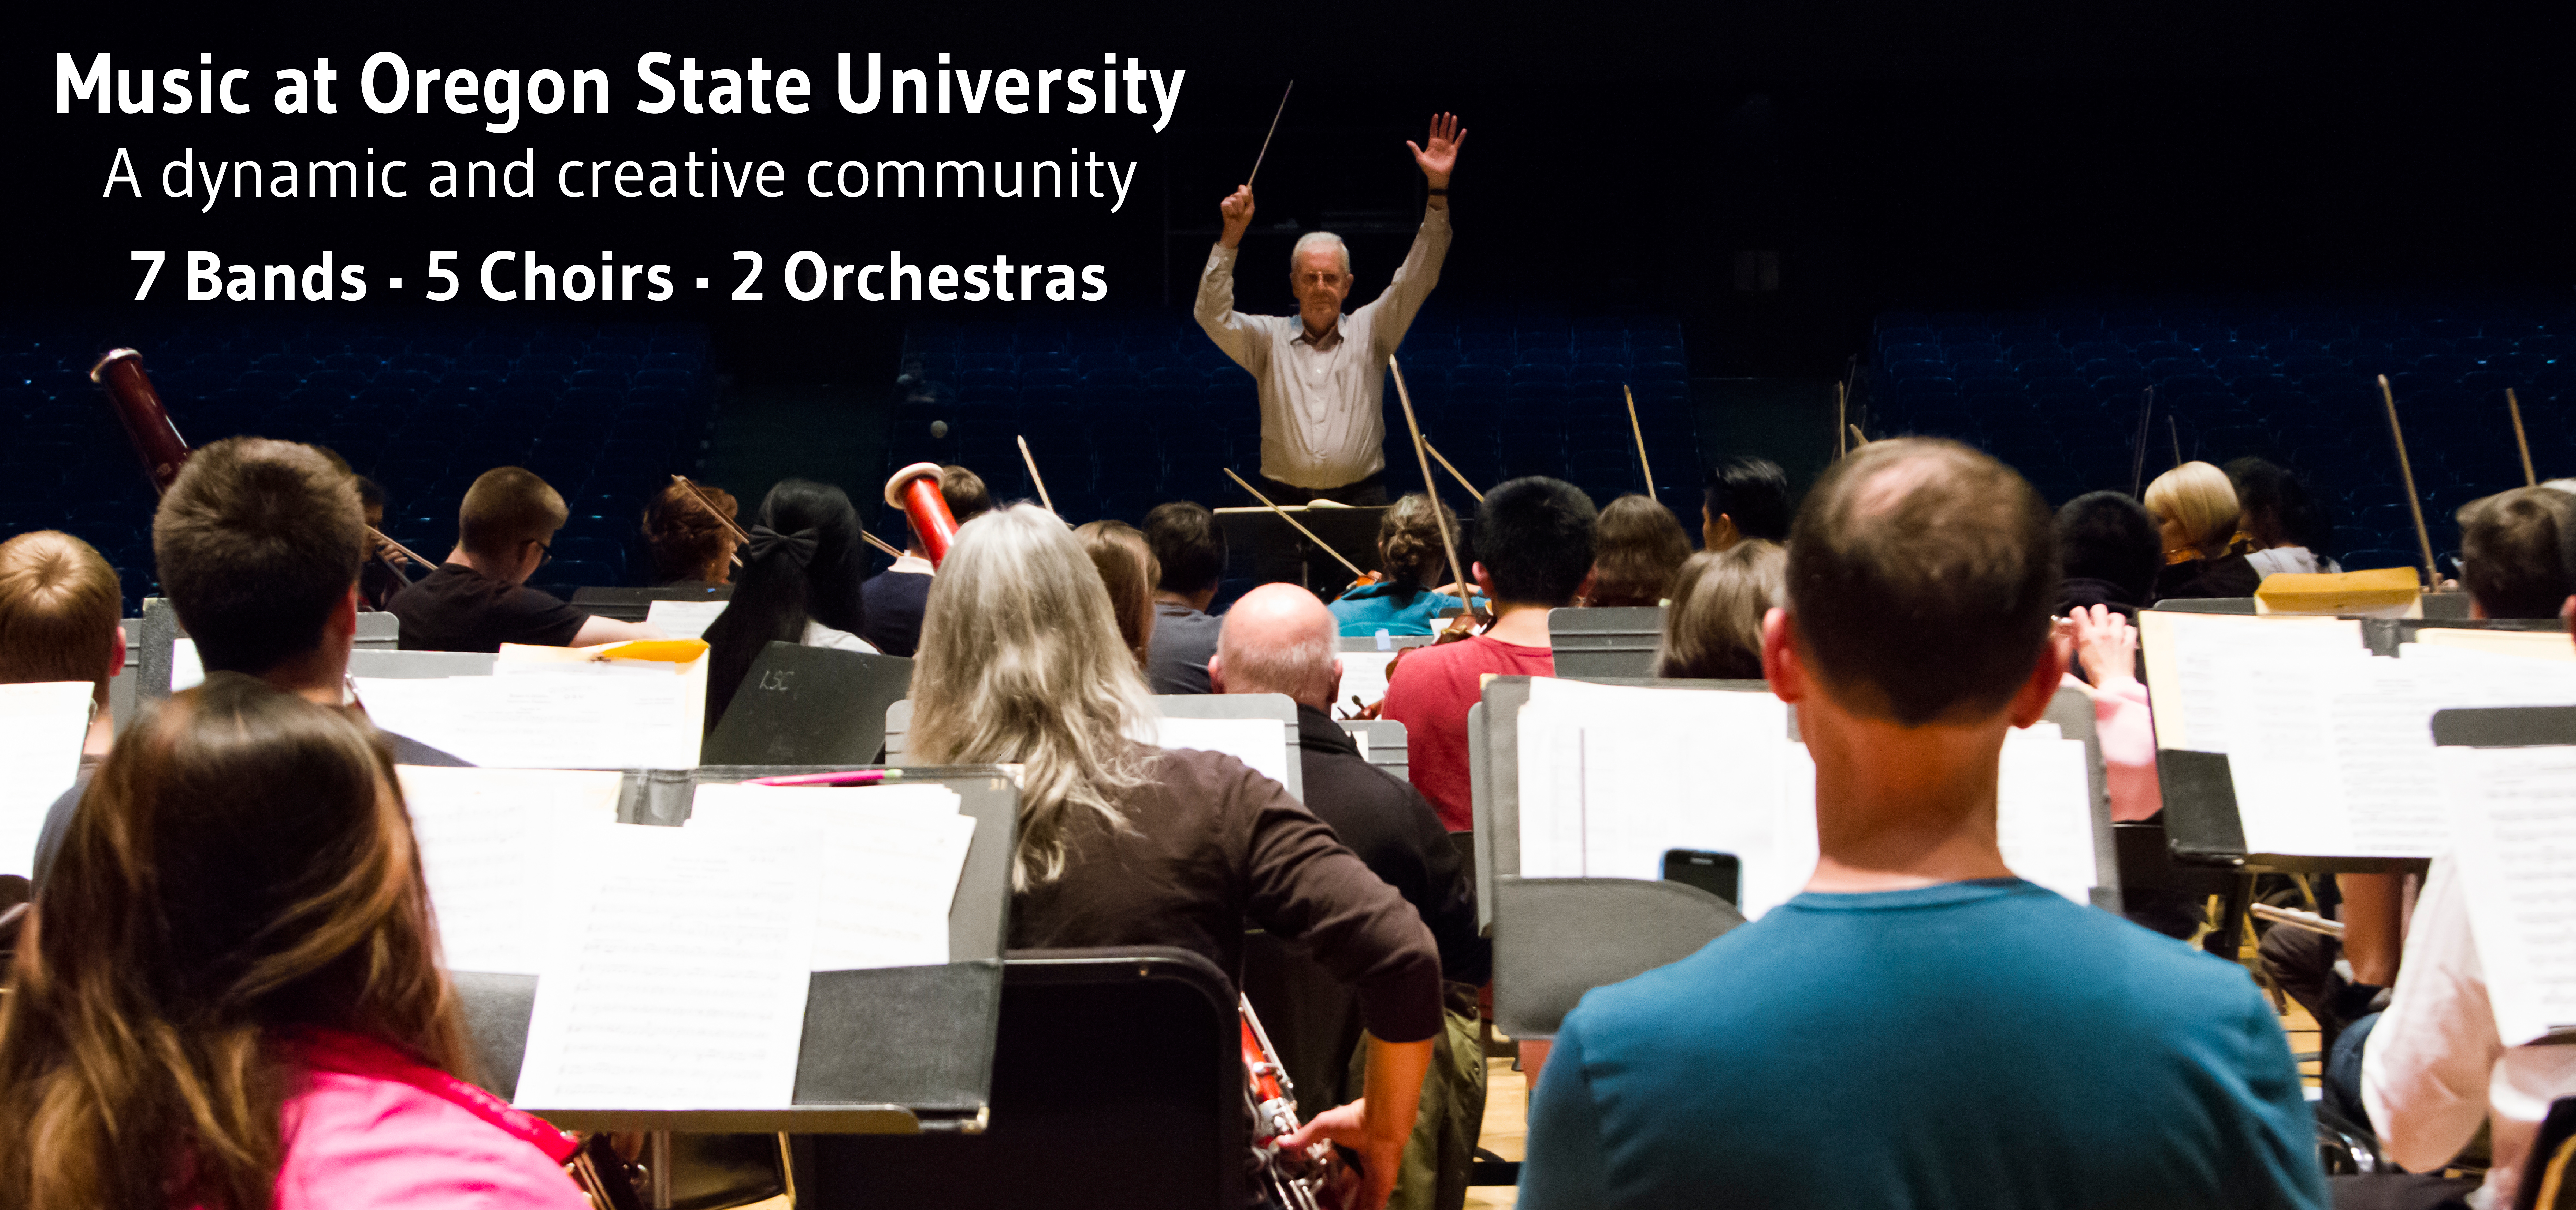 Music at OSU - a dynamic and creative community.